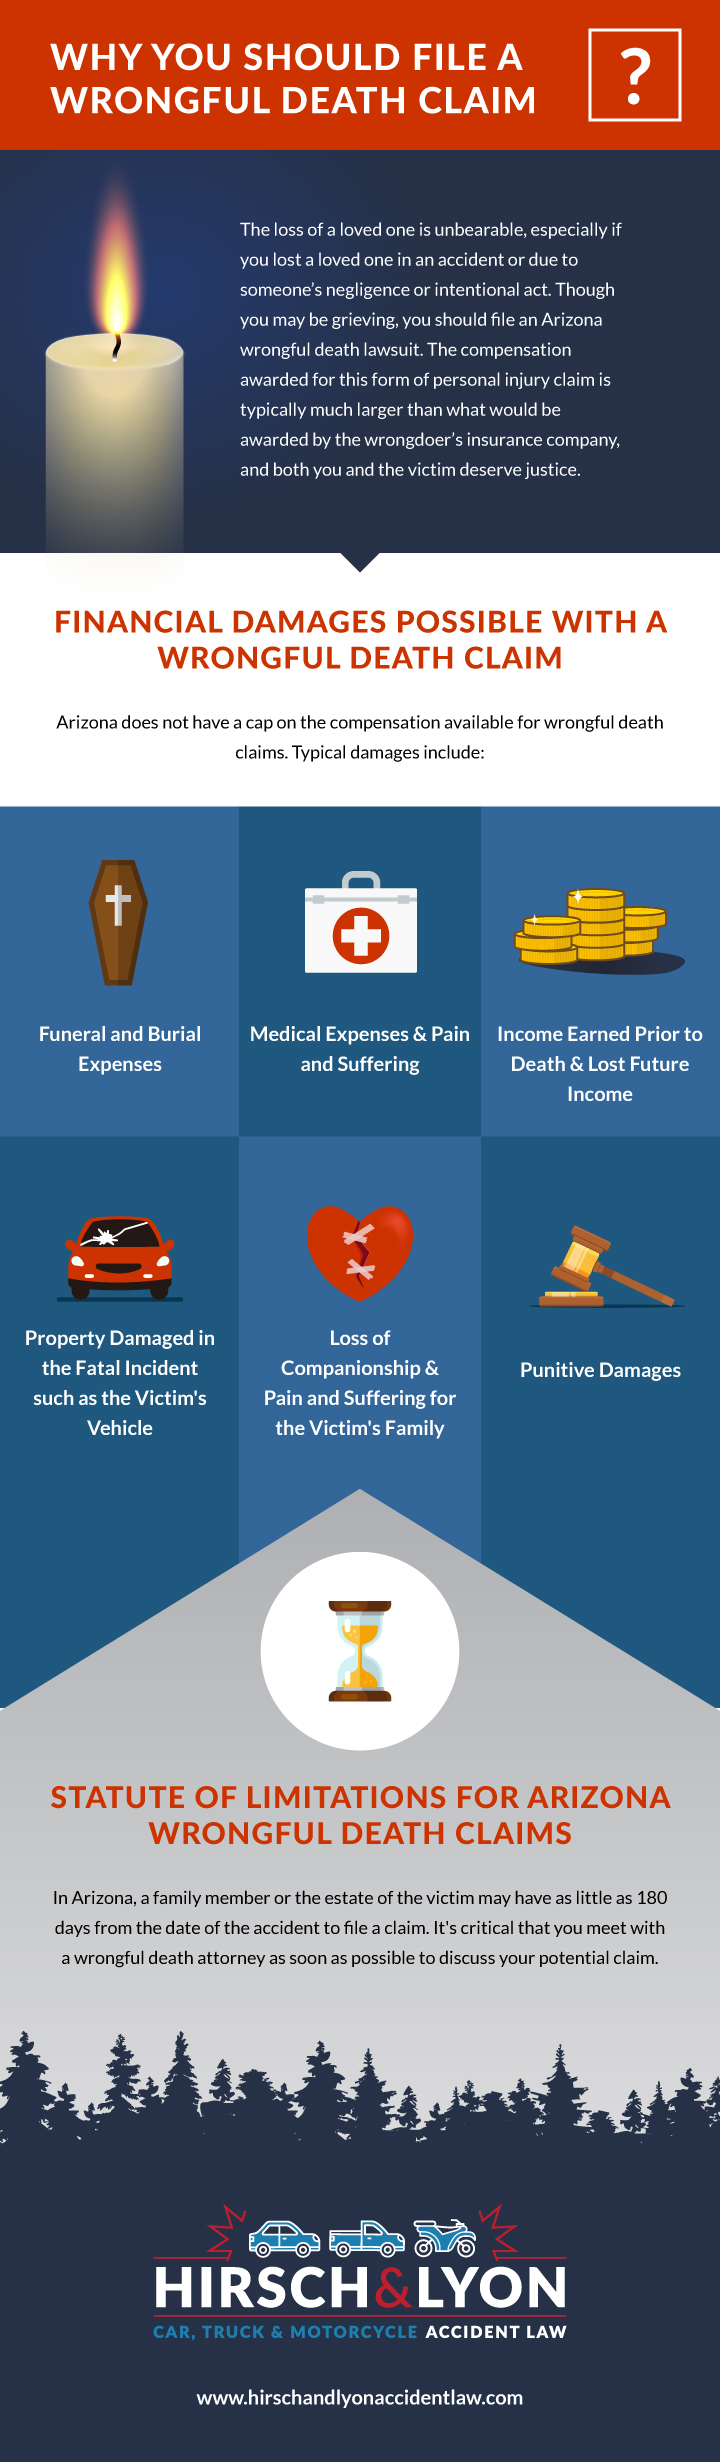 Important Information from an Arizona Wrongful Death Attorney